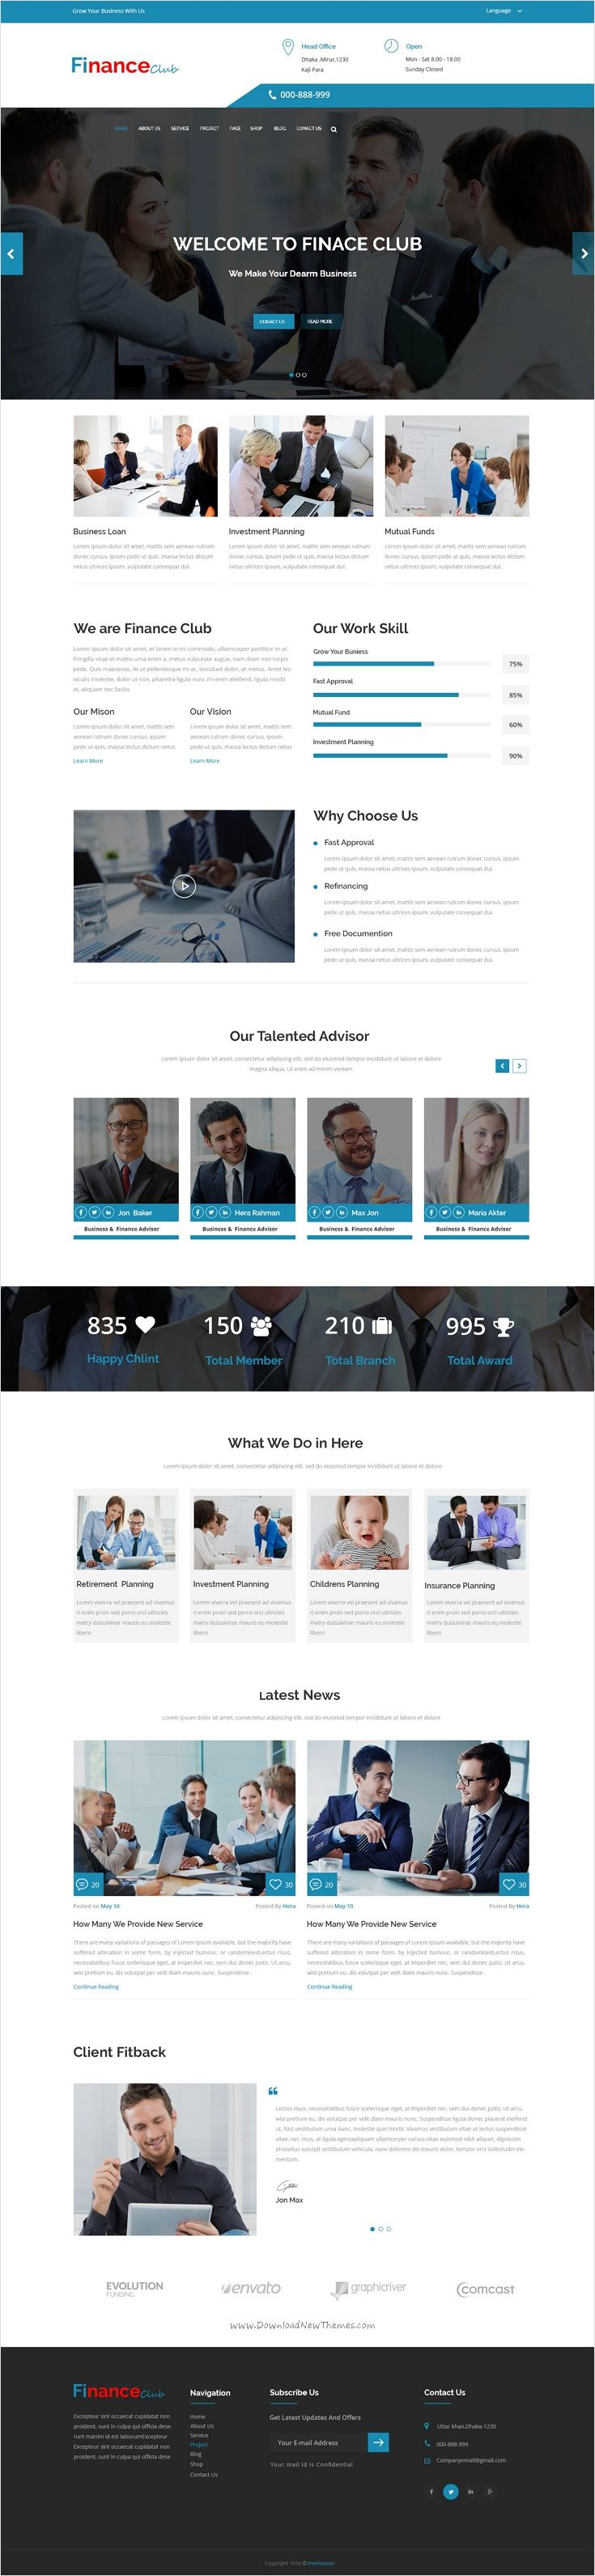 Finance Club is a clean and Modern #PSD #Template for #corporate #website like Financial Advisor, Accountant, Consulting Firms, insurance, loan, tax help, Investment firm etc with 2 homepage layouts and 17 organized PSD pages download now➩ https://themeforest.net/item/finance-club-finance-business-psd-template-/17113959?ref=Datasata